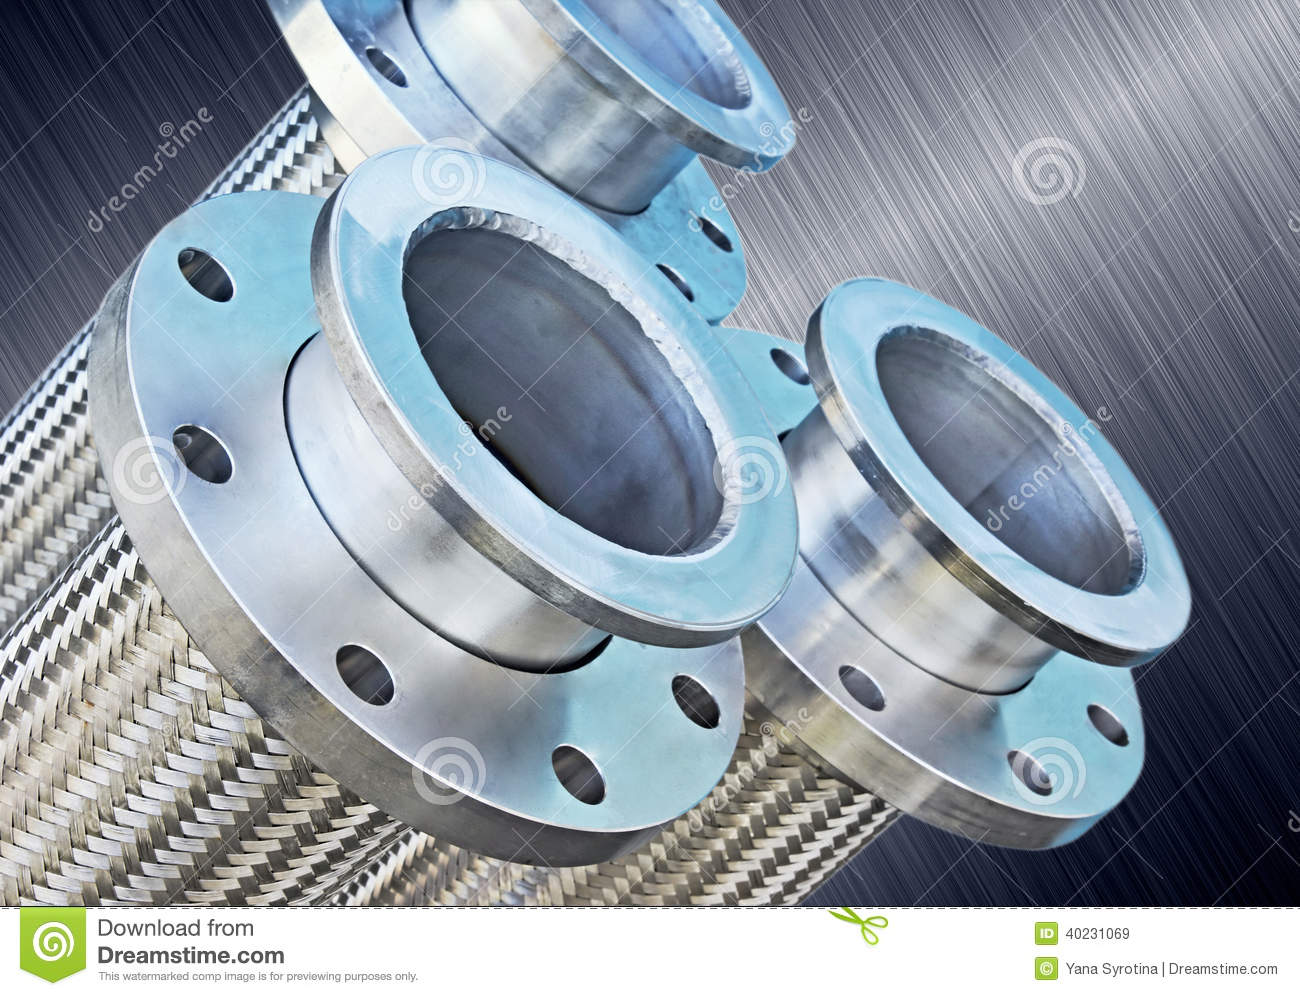 Stainless Steel Braided Corrugated Metal Hose. Stock Image - Image ...